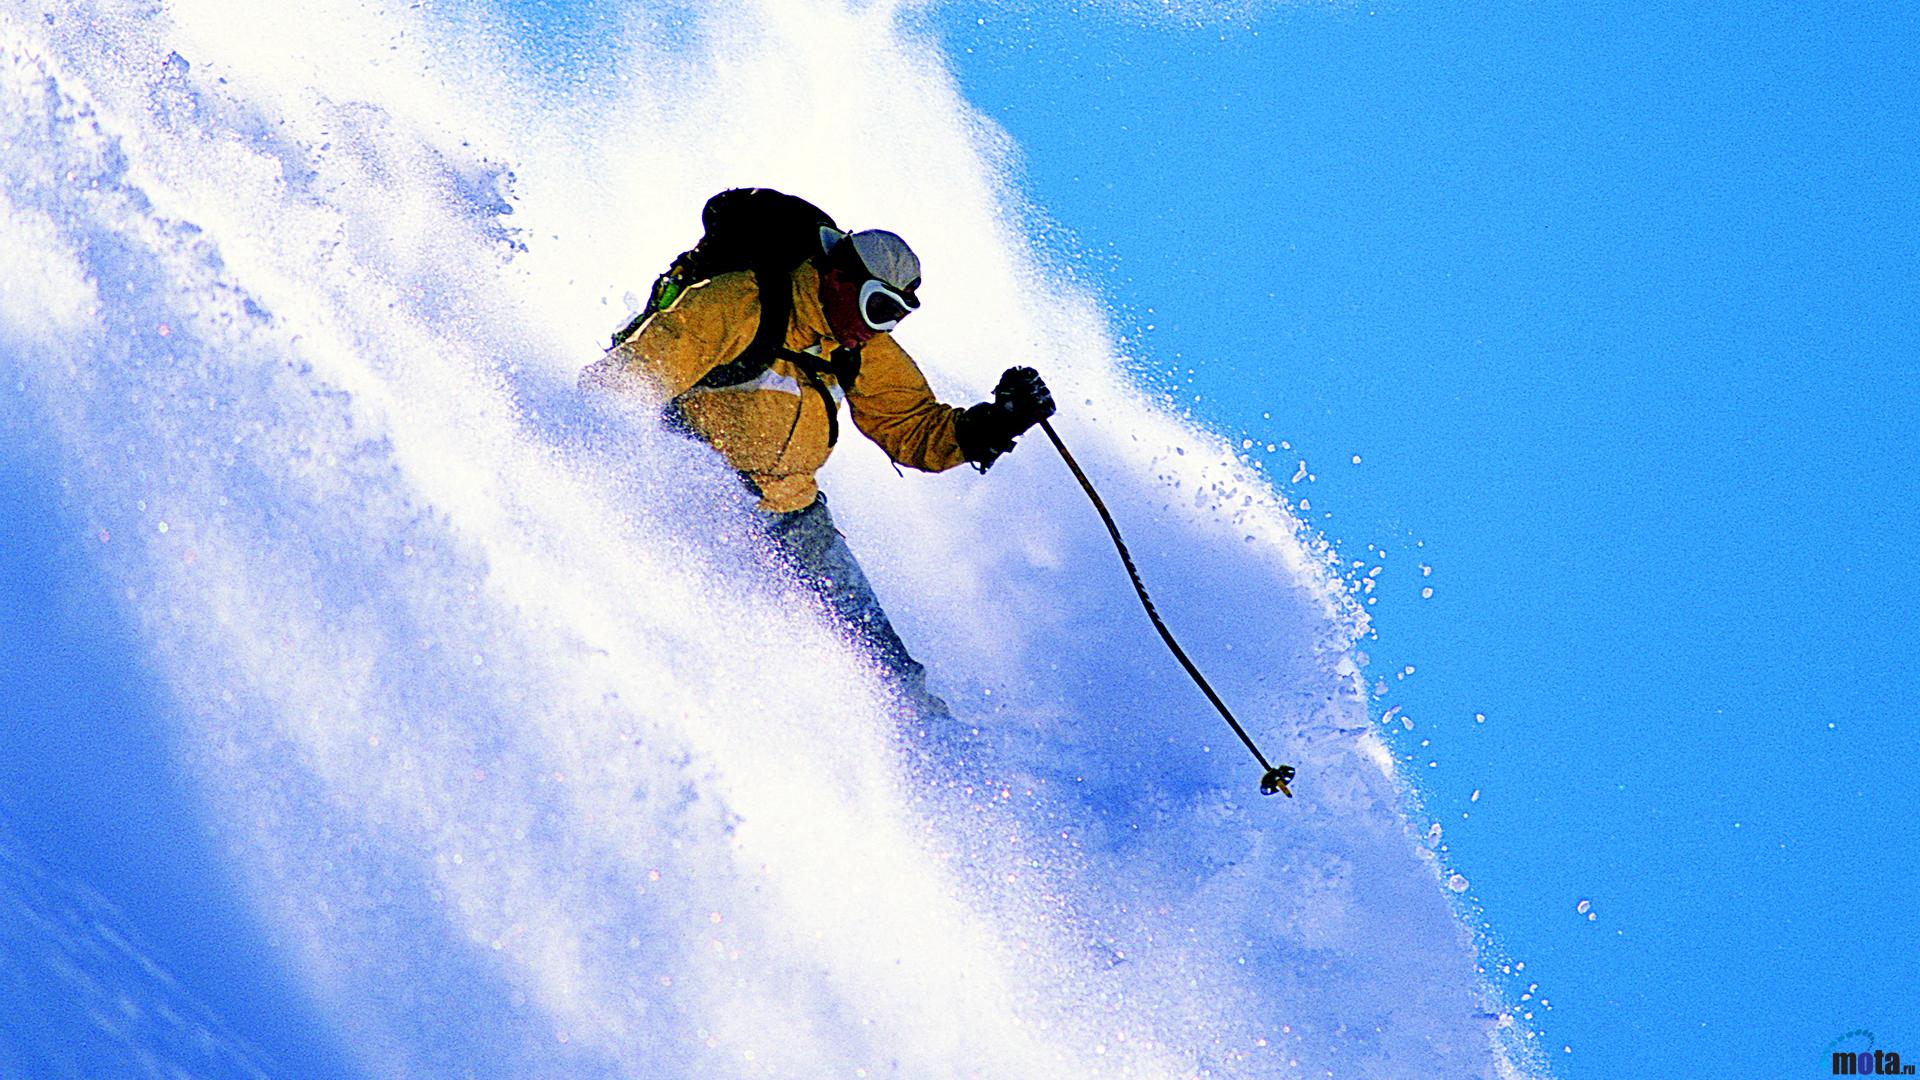 Extreme Hd Wallpapers: Extreme Skiing Wallpaper